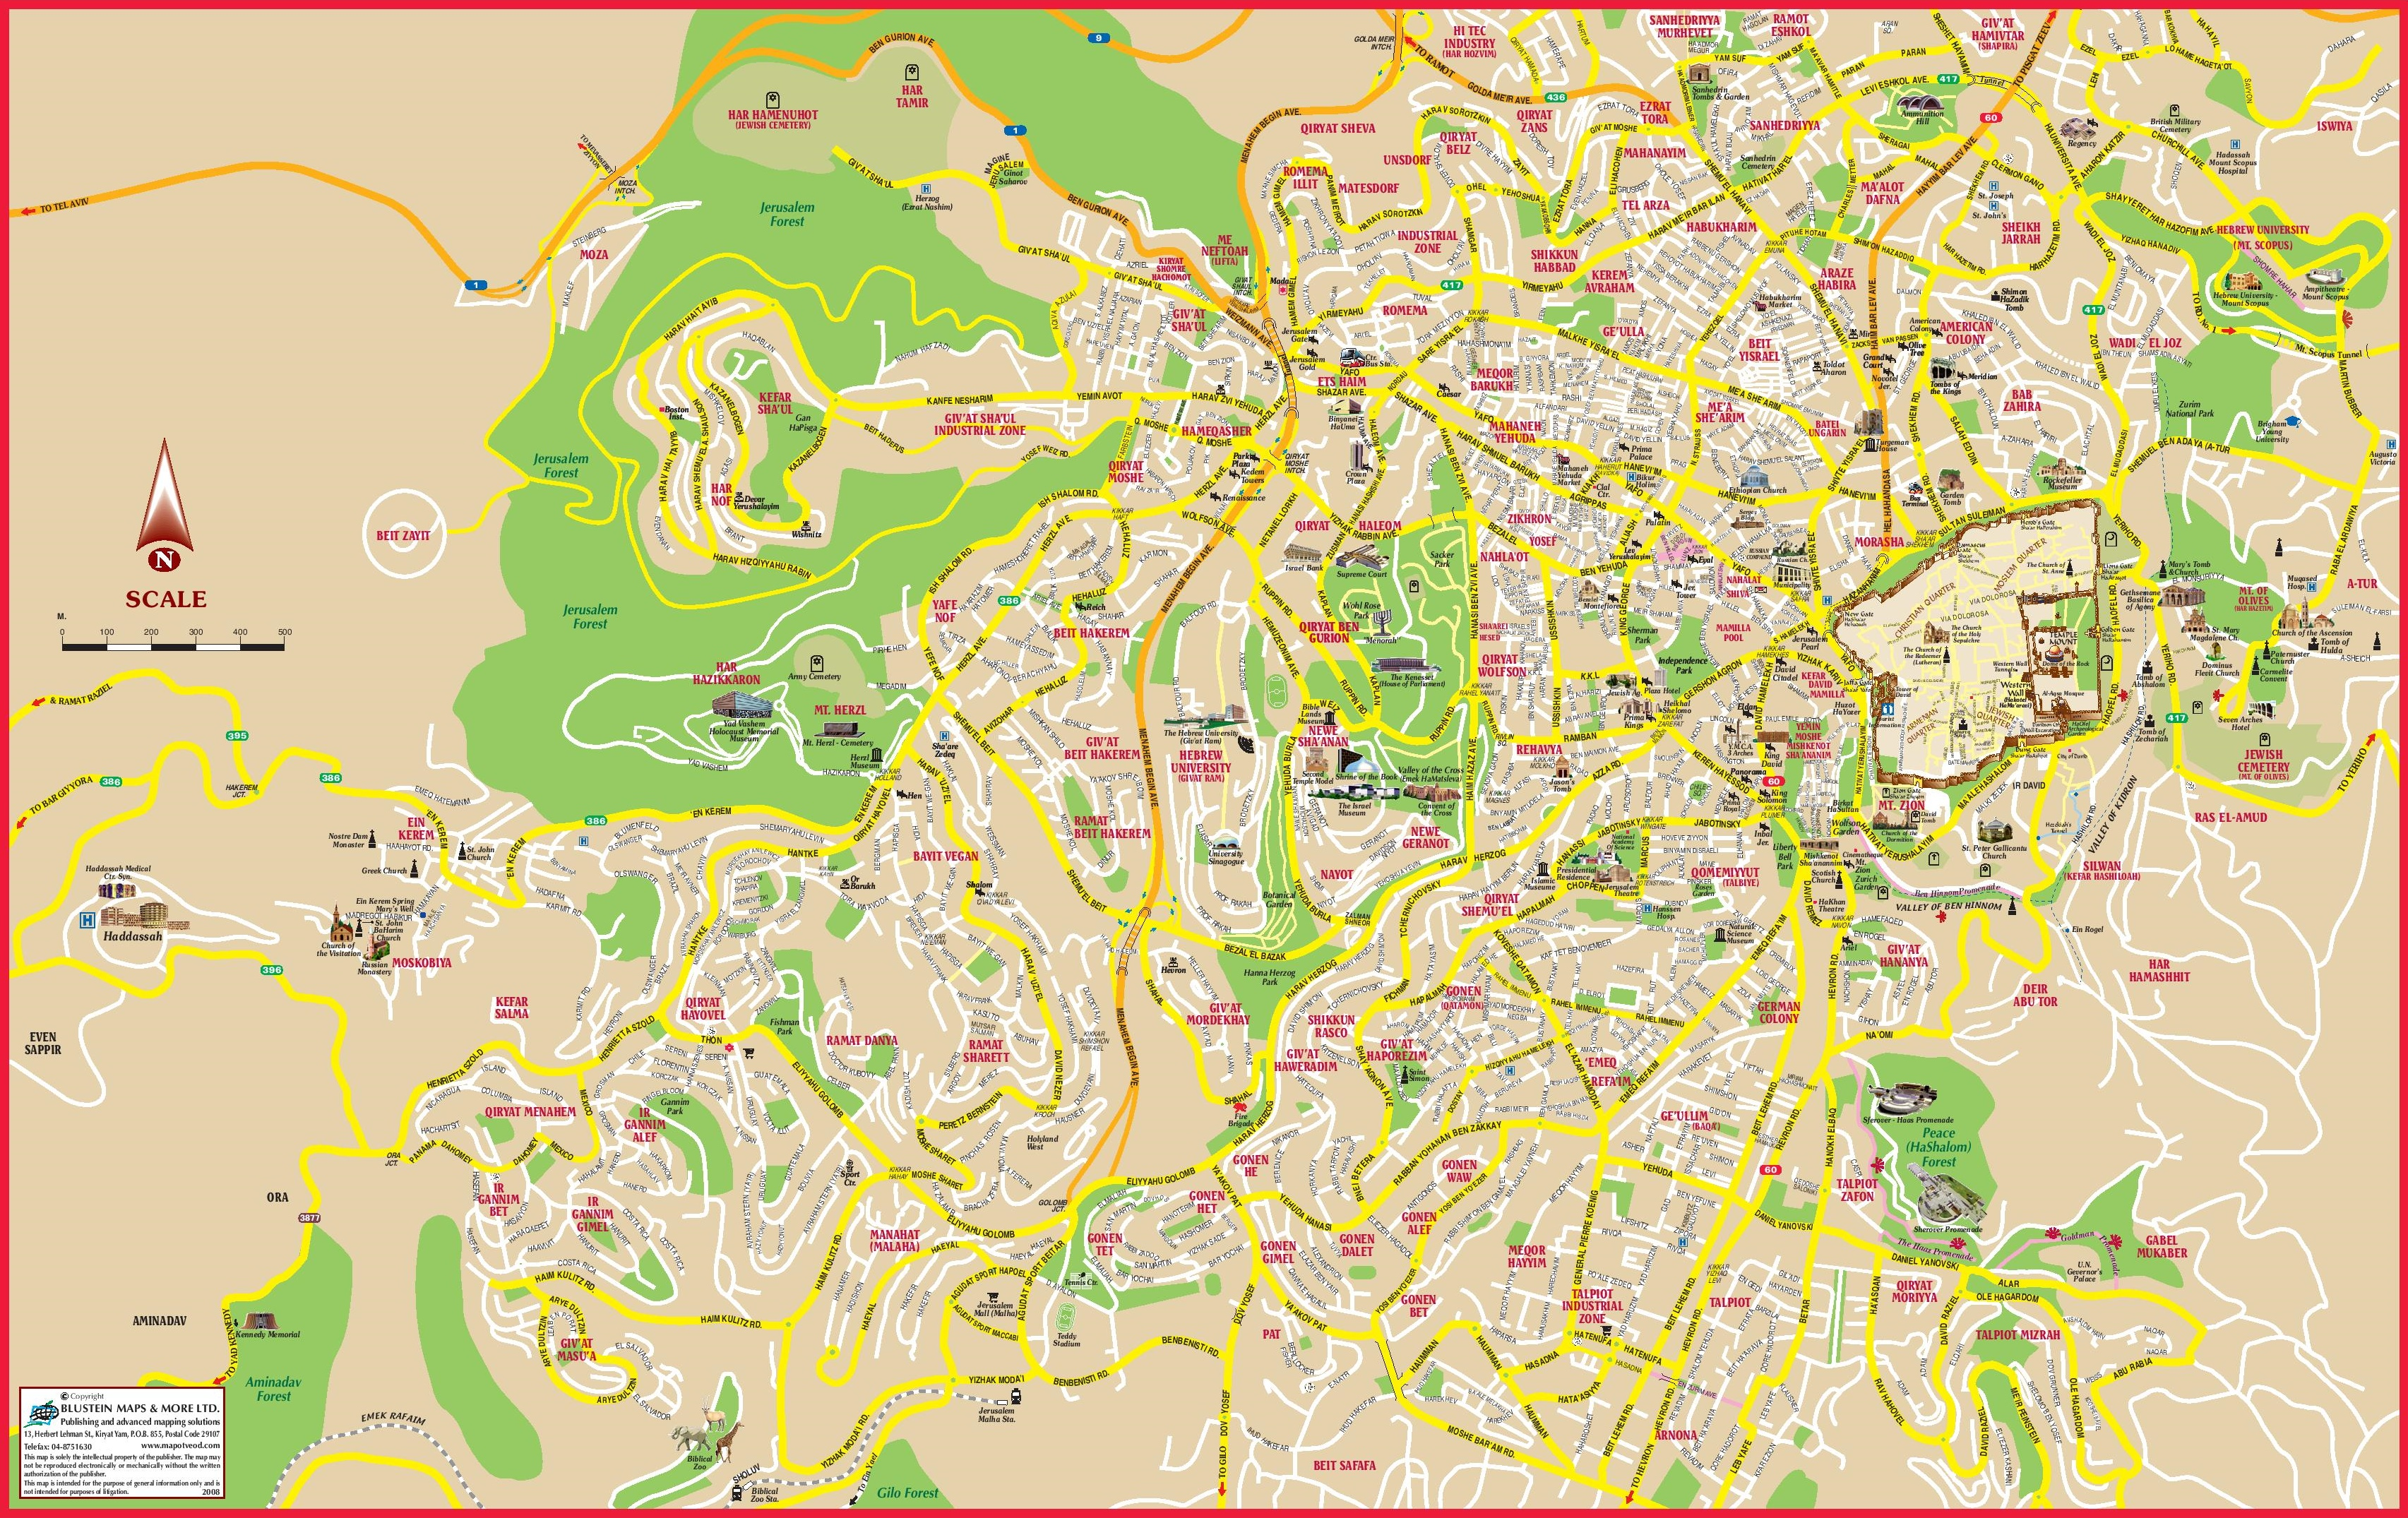 Jerusalem tourist attractions map – Jerusalem Tourist Map